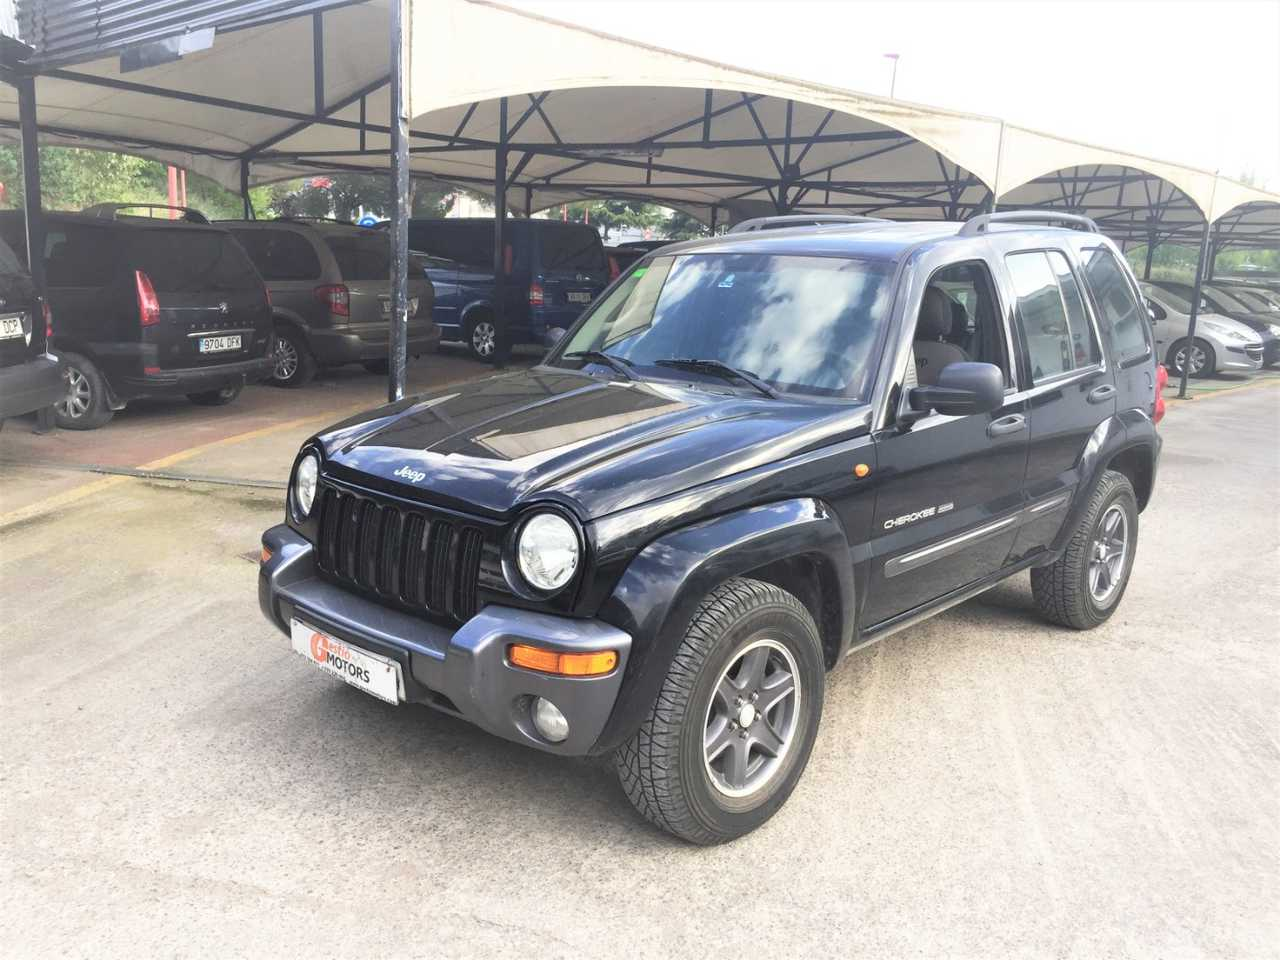 Jeep Cherokee 2.5 CDR  EXTREME SPORT   - Foto 1